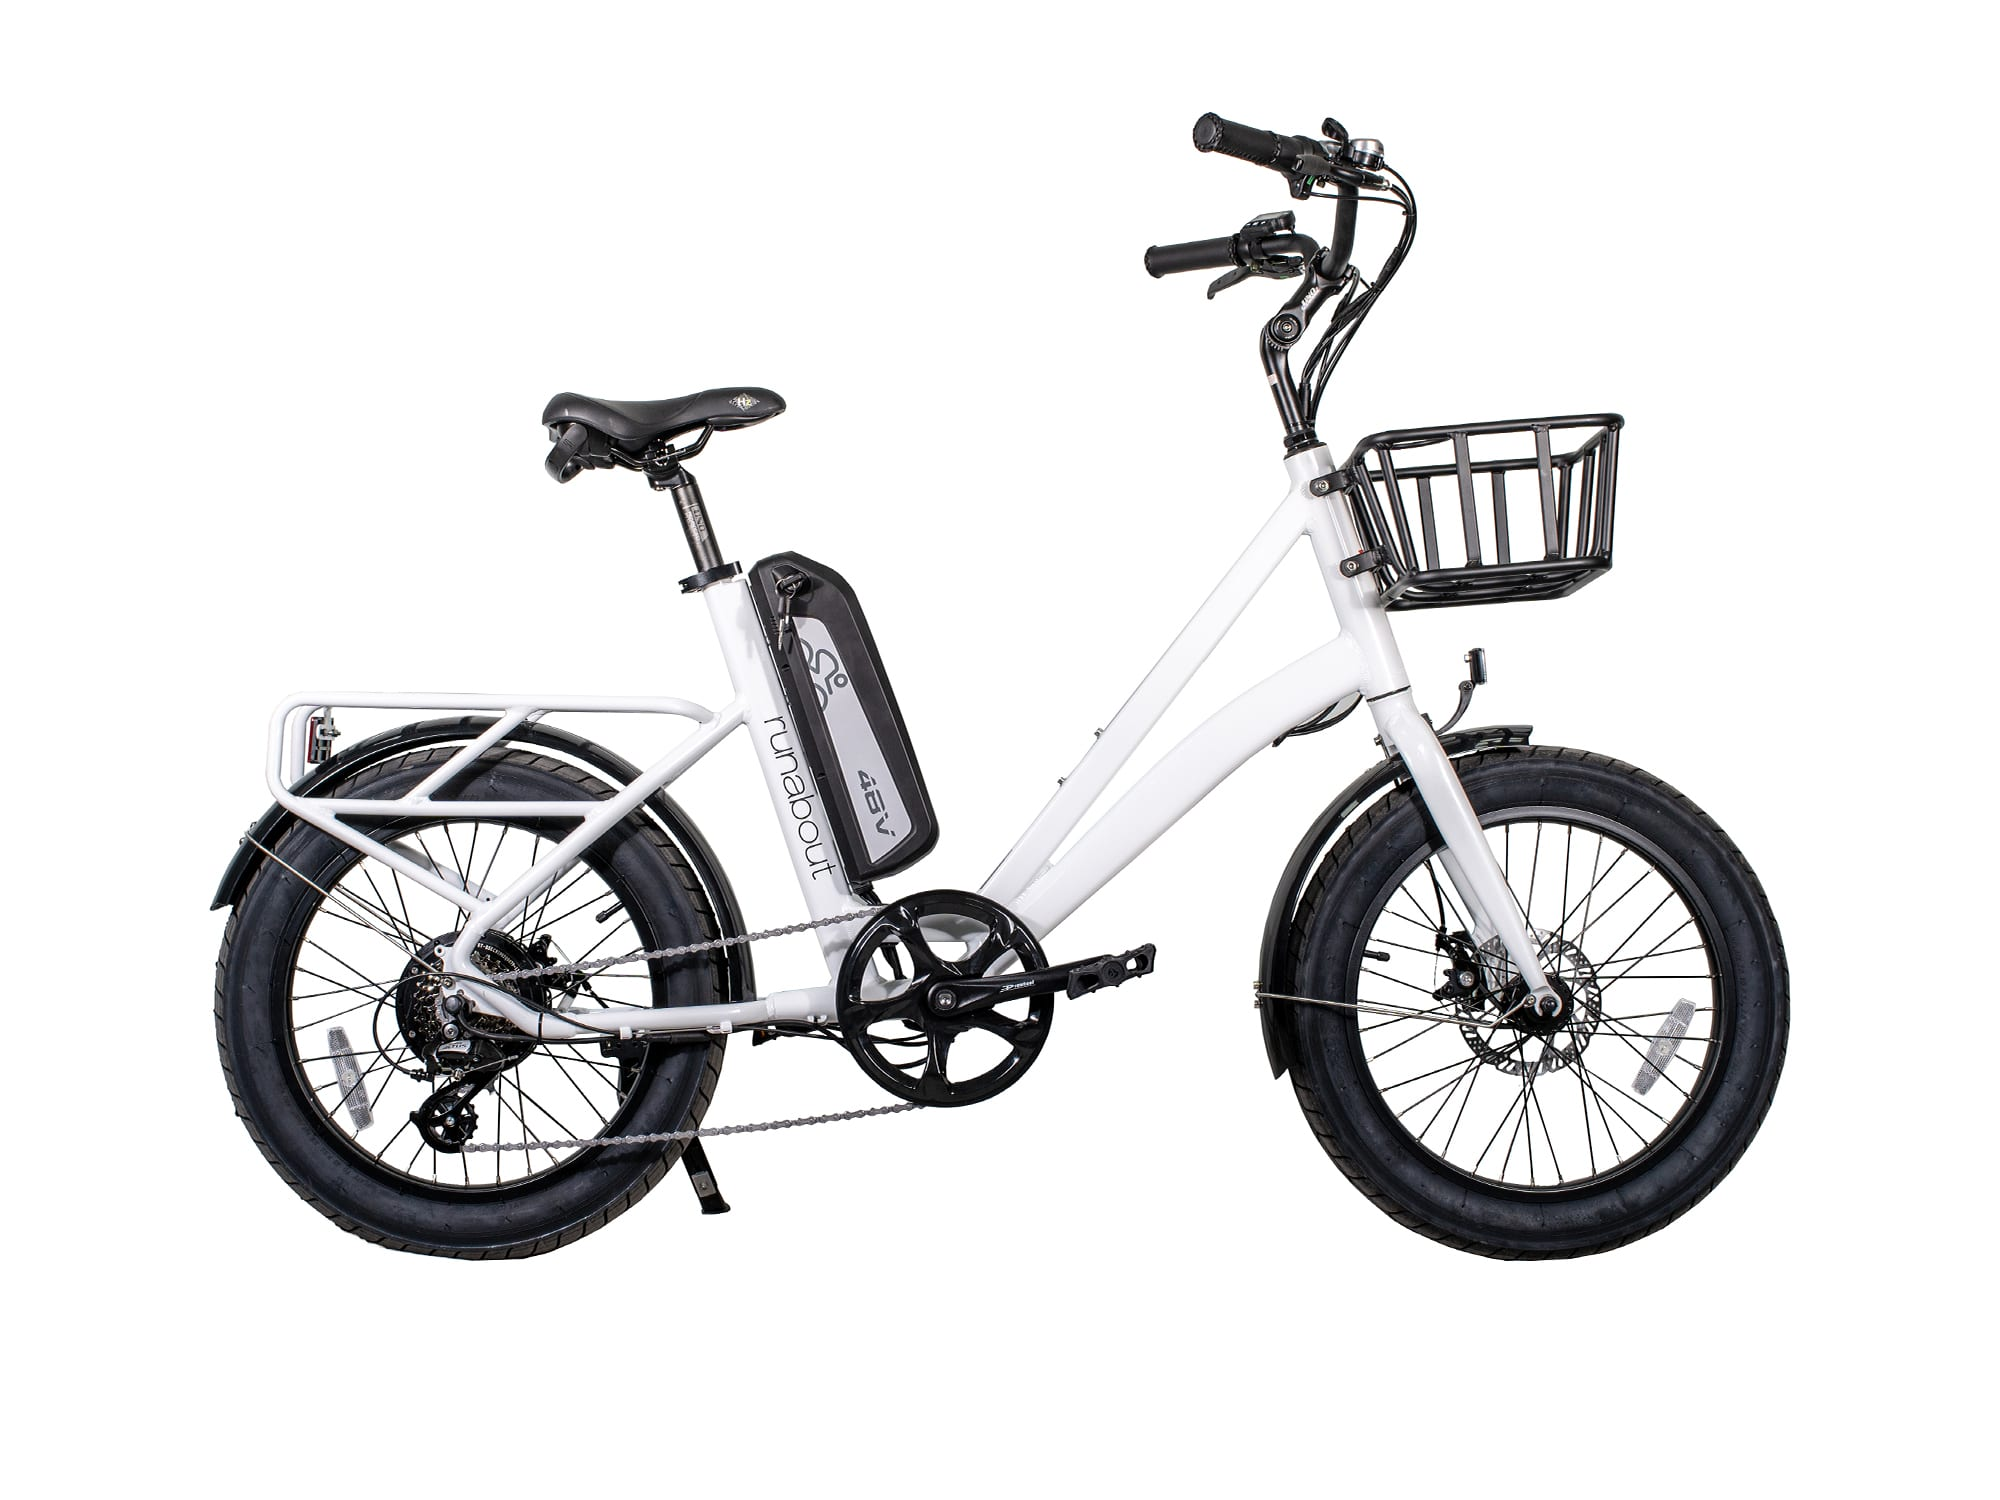 Civi Bikes Runabout Review